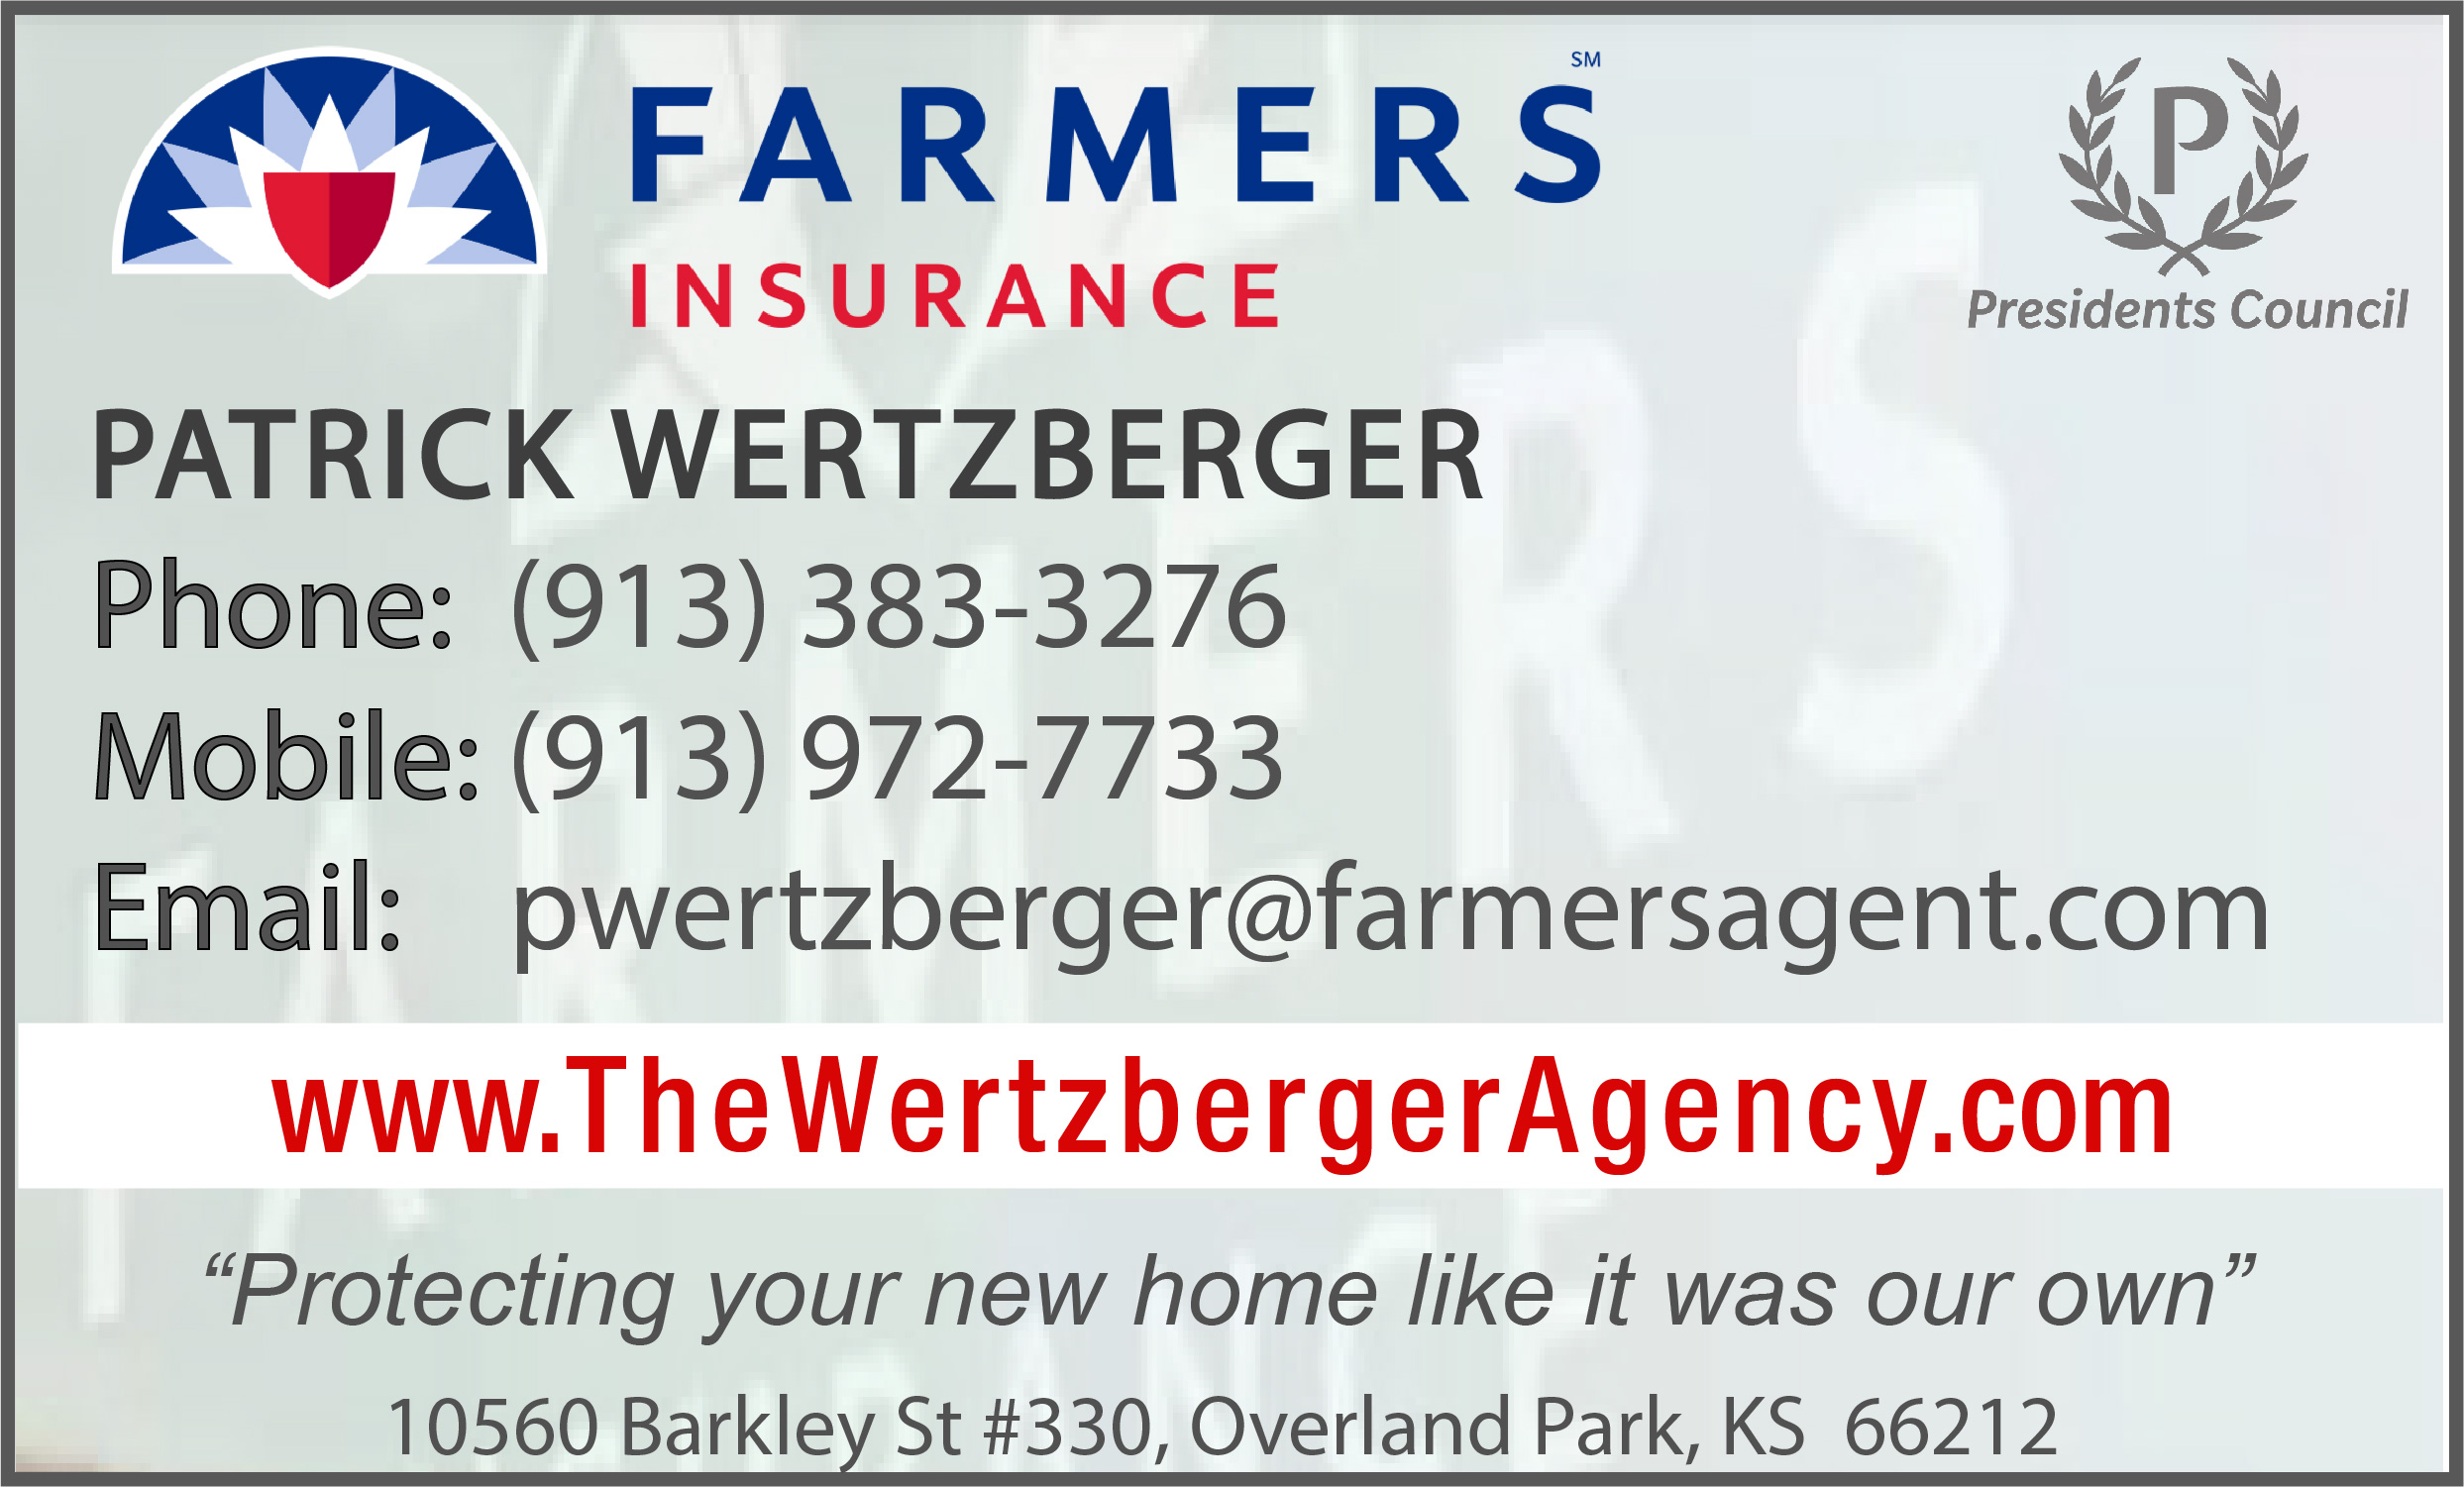 Farmers Insurance - The Wertzberger Agency